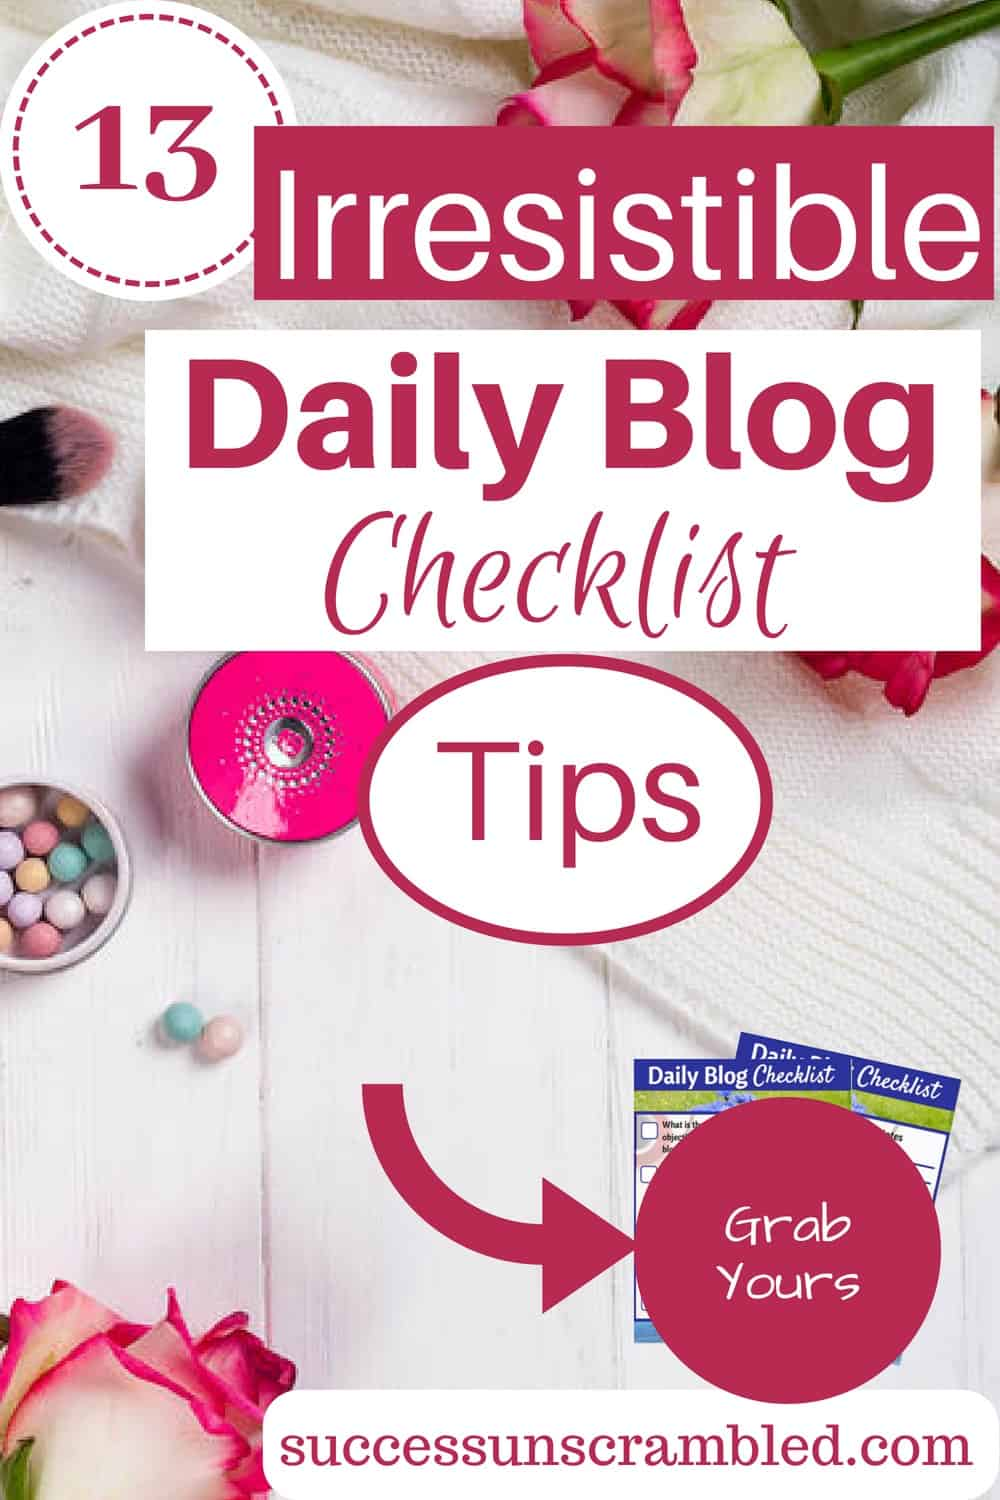 Grab these 13 irresistible daily blog checklist tips to get your blog posts right every time.  It will help you improve productivity, accelerate your time management, make fewer mistakes and create perfectly, publish-ready blog posts every time. Grab yours today.